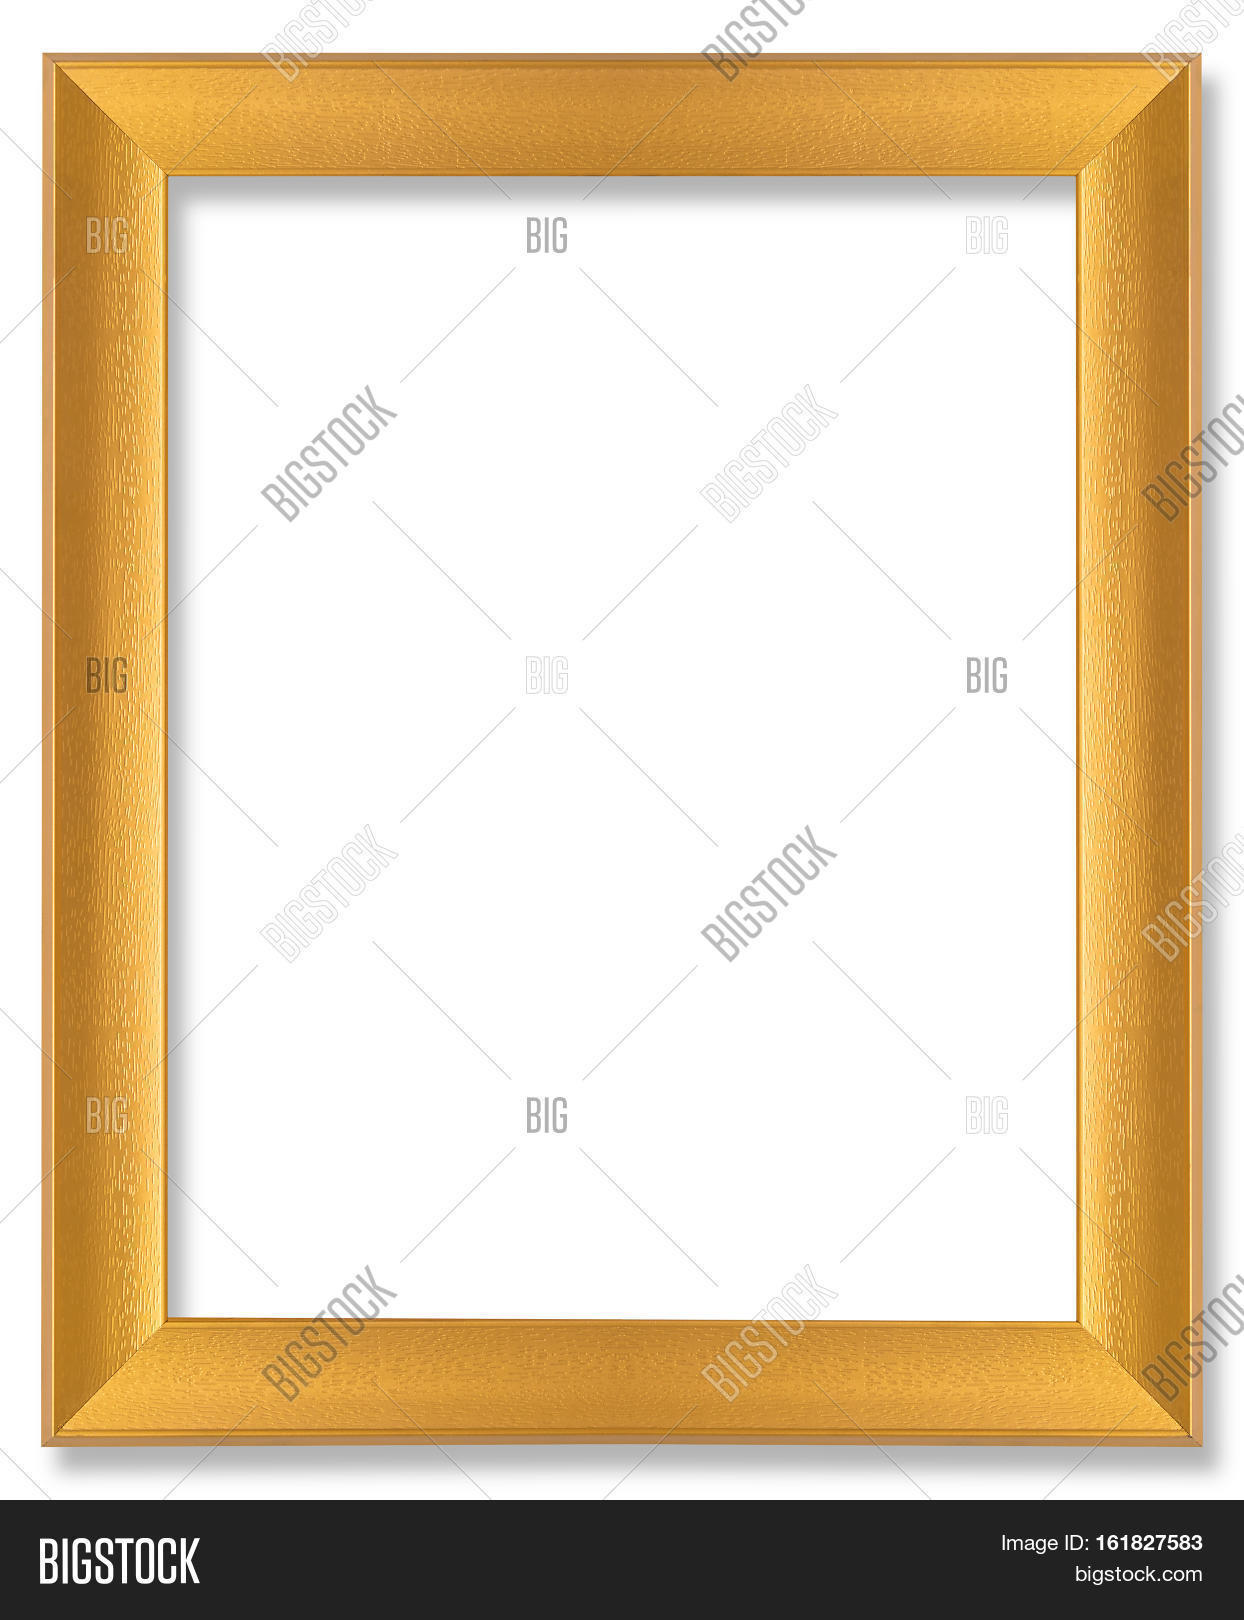 Gold Wooden Frame Image Photo Free Trial Bigstock